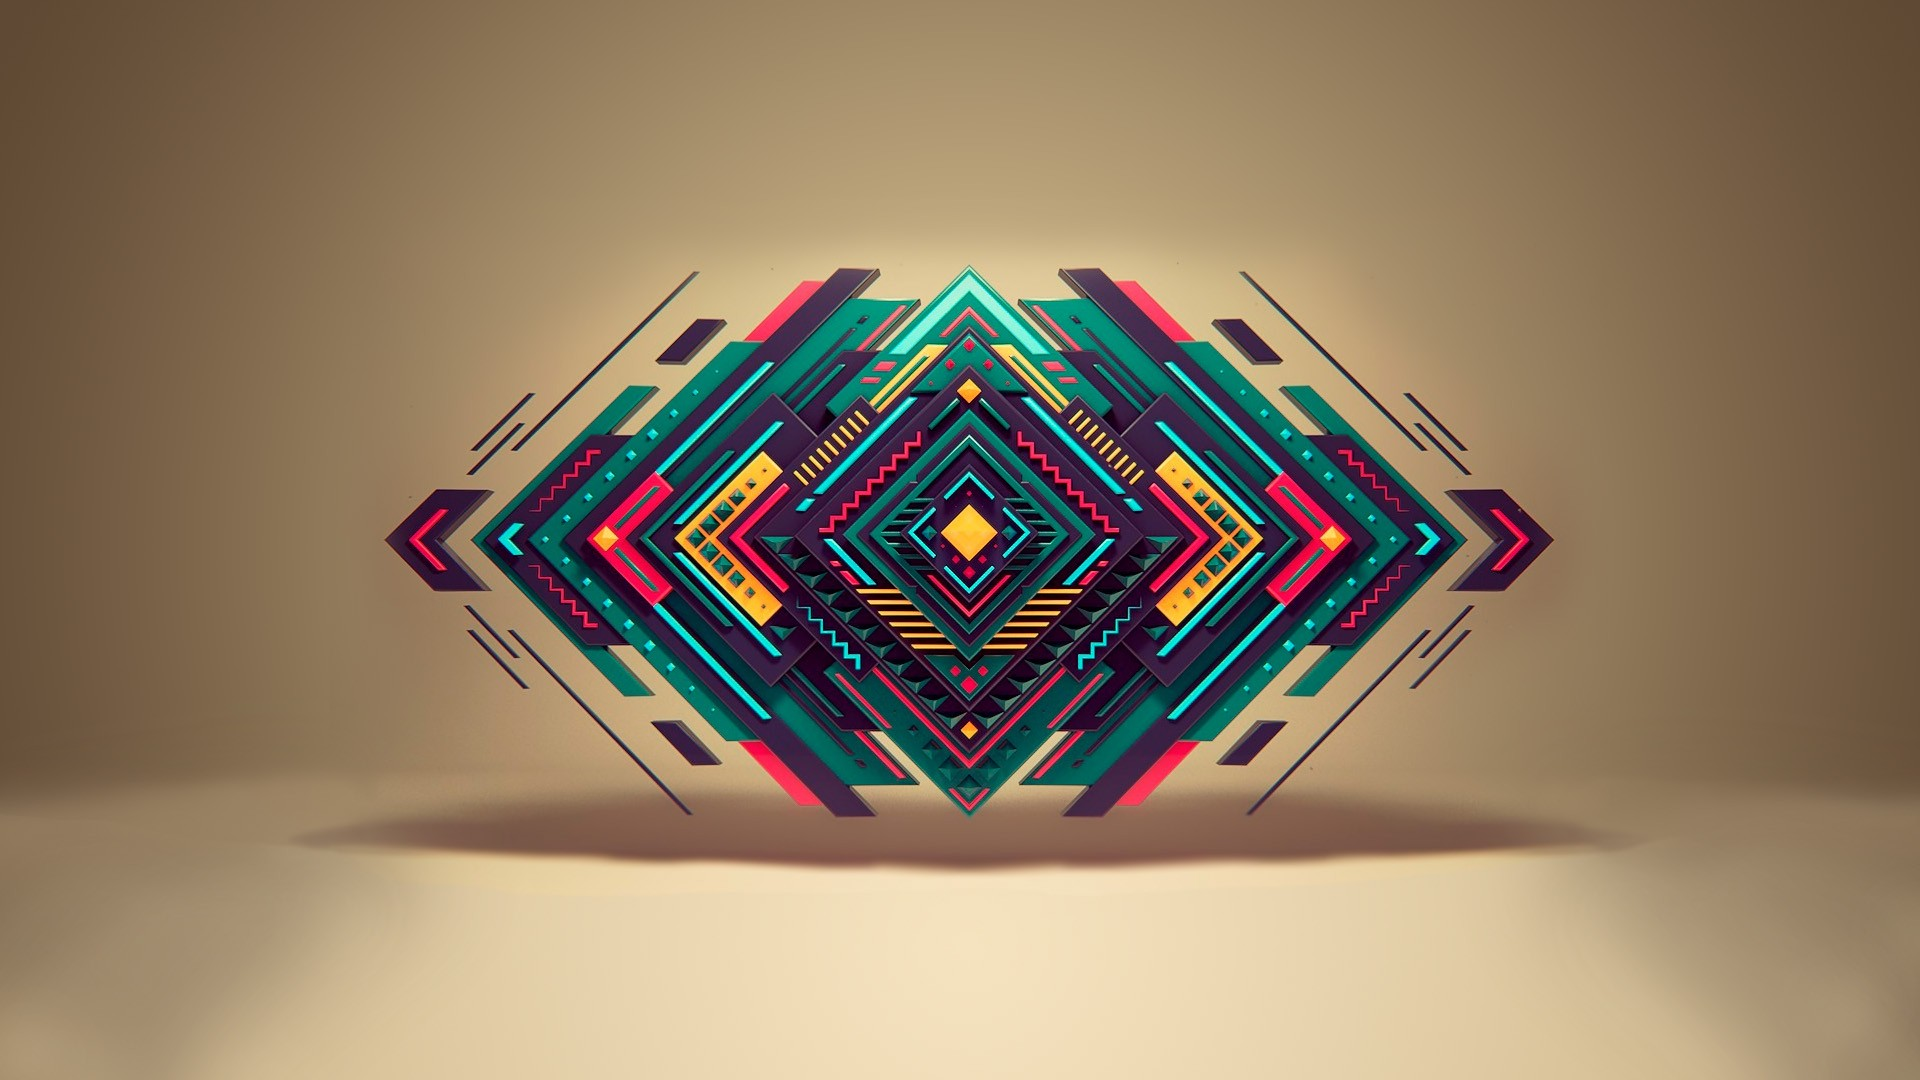 Abstract shape [1920x1080] : wallpaper